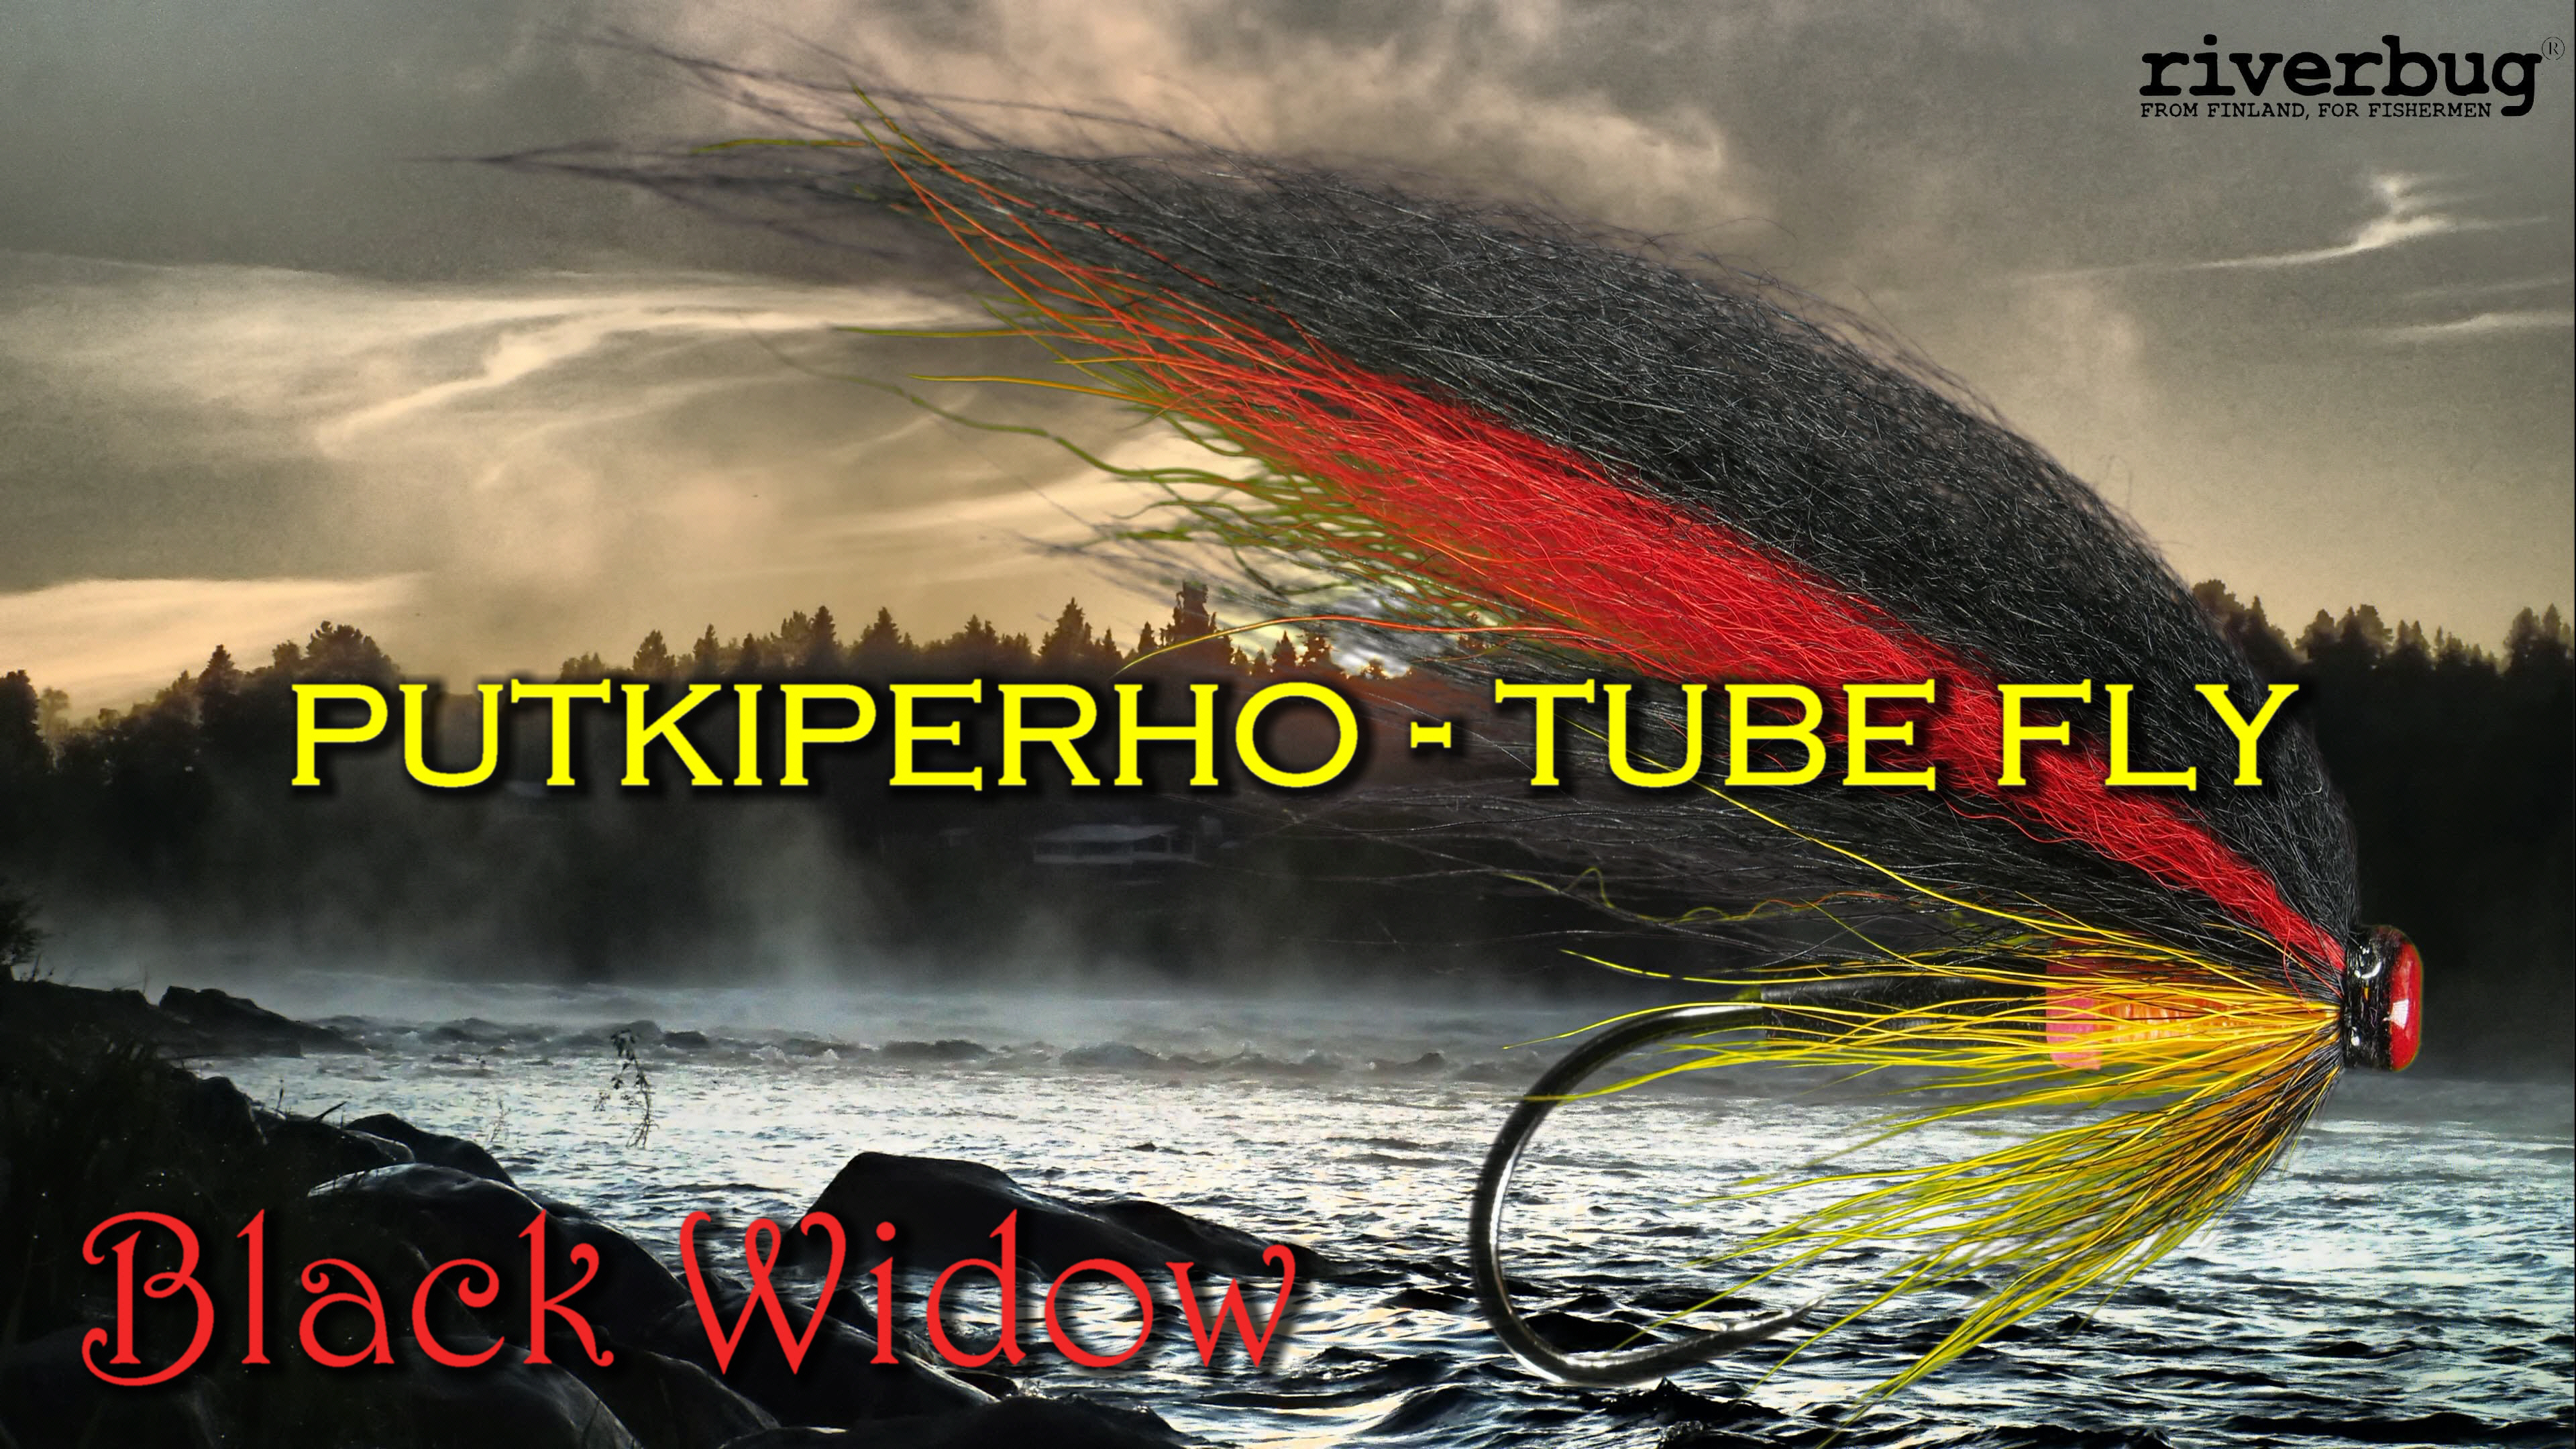 Putkiperho - Tube Fly - Black Widow - RiverBug 2.0